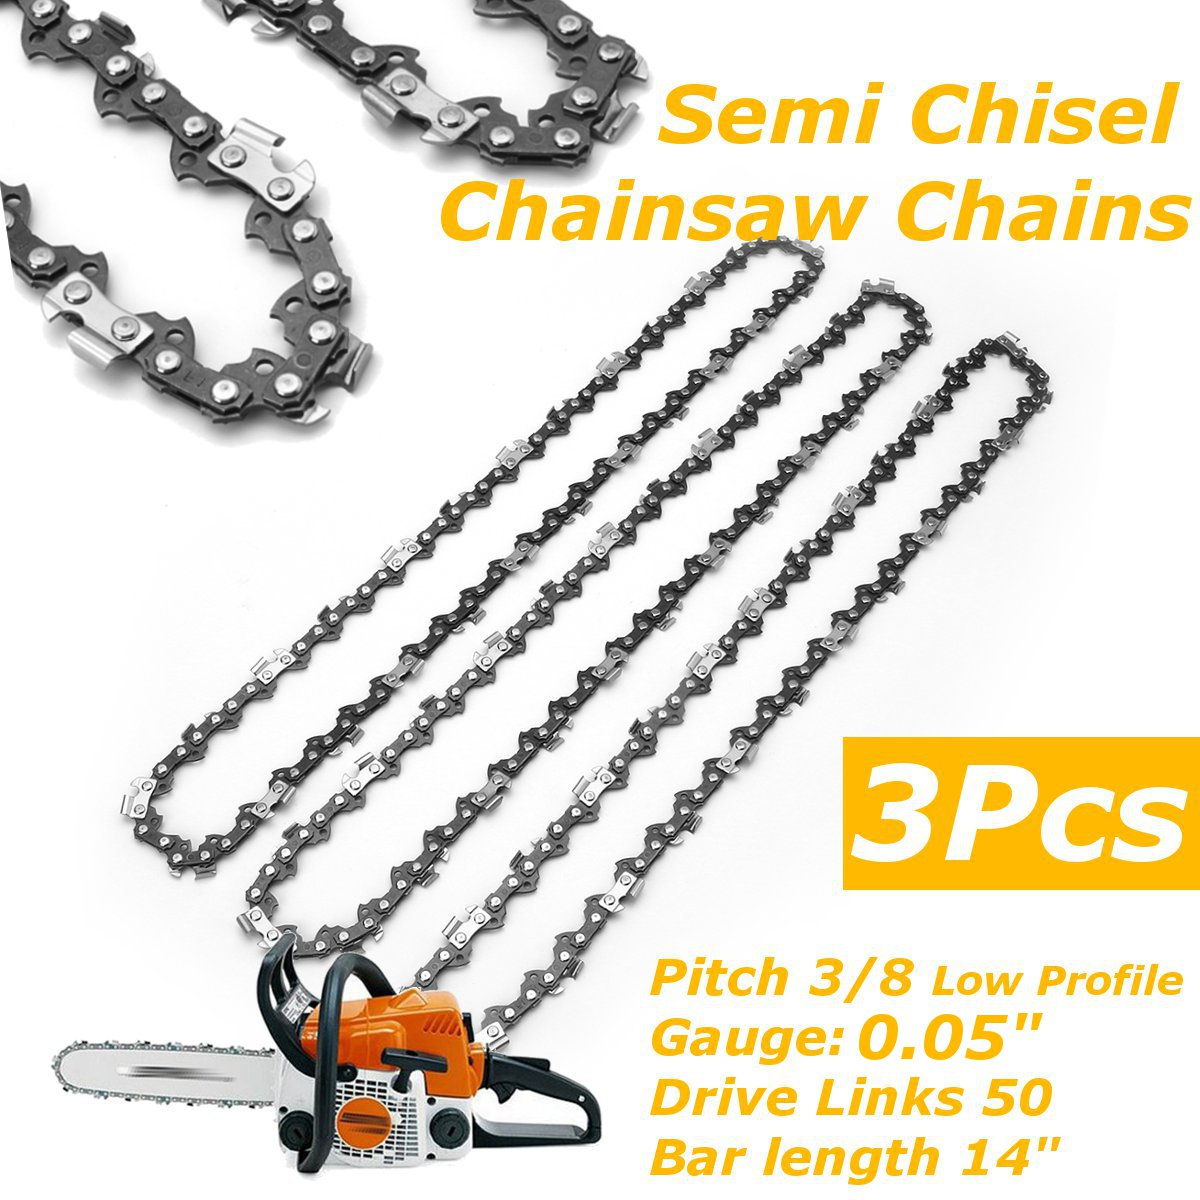 3Pcs Chainsaw Semi Chisel Chains 3/8LP 0.05 For Stihl MS170 MS171 MS180 <font><b>MS181</b></font> Electric Saw image